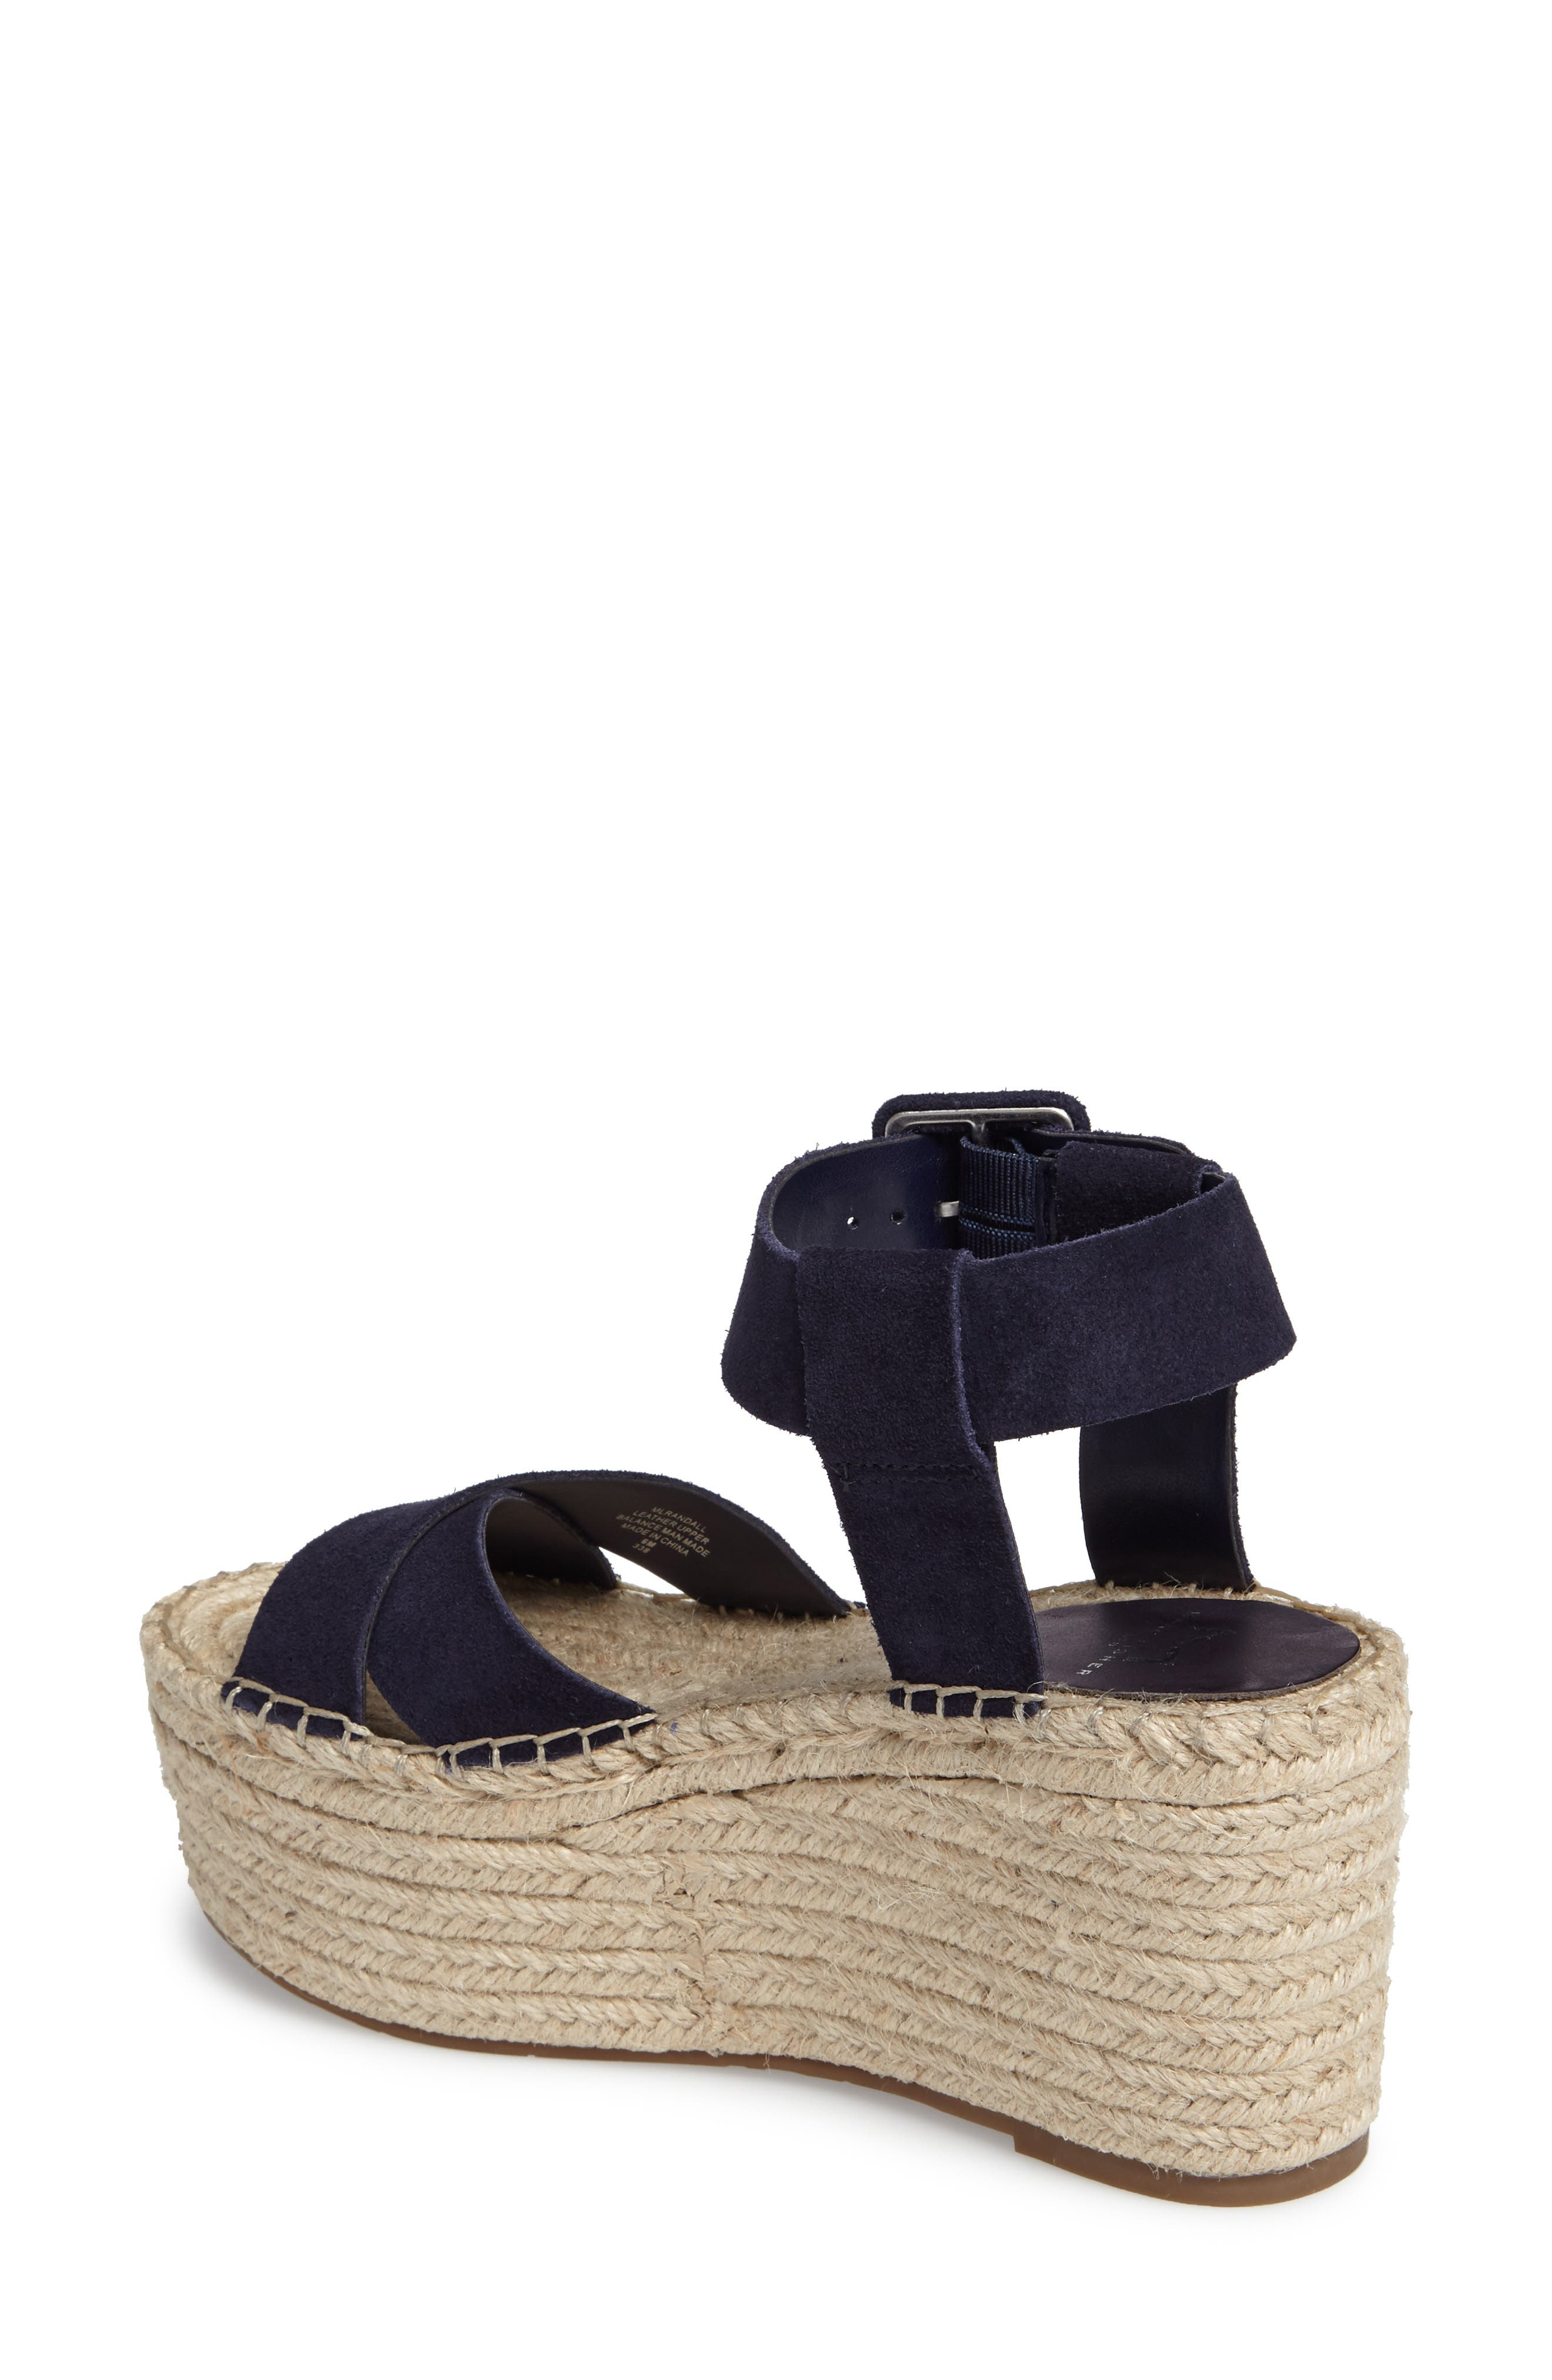 'Randall' Platform Wedge,                             Alternate thumbnail 2, color,                             NAVY SUEDE